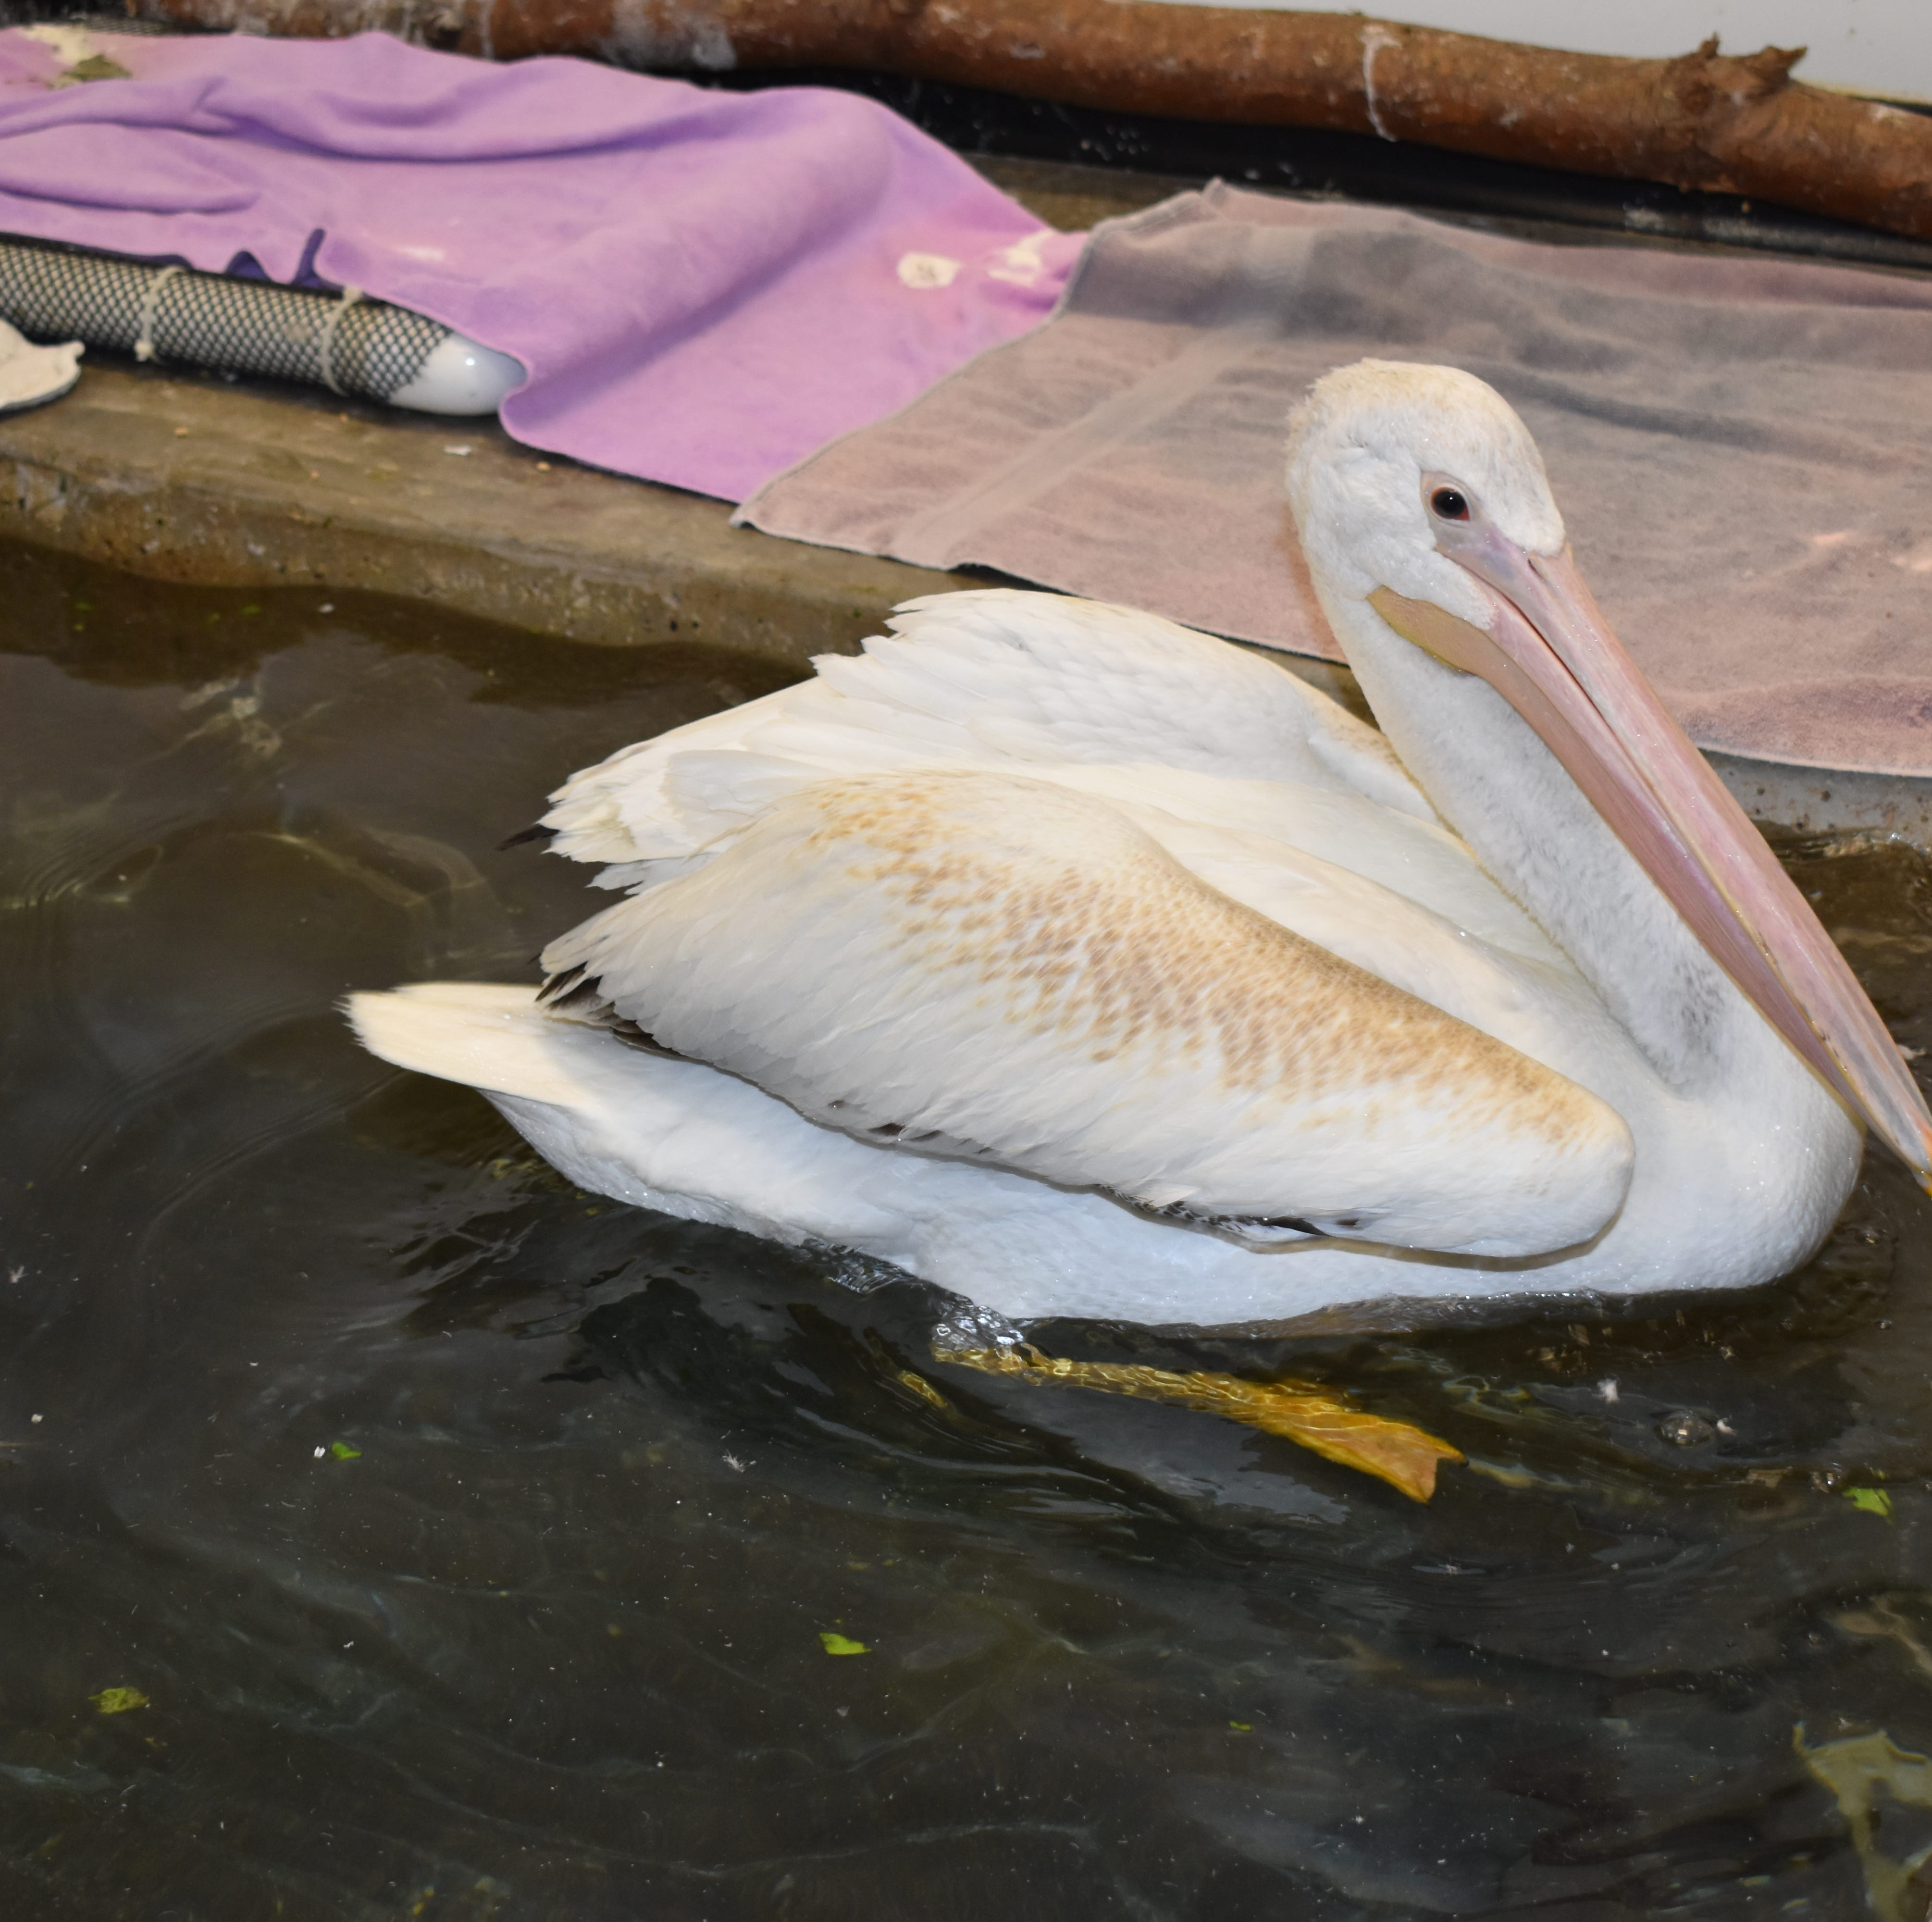 A pelican was nursed back to health in the town of Ottawa. It can't leave until the government reopens.